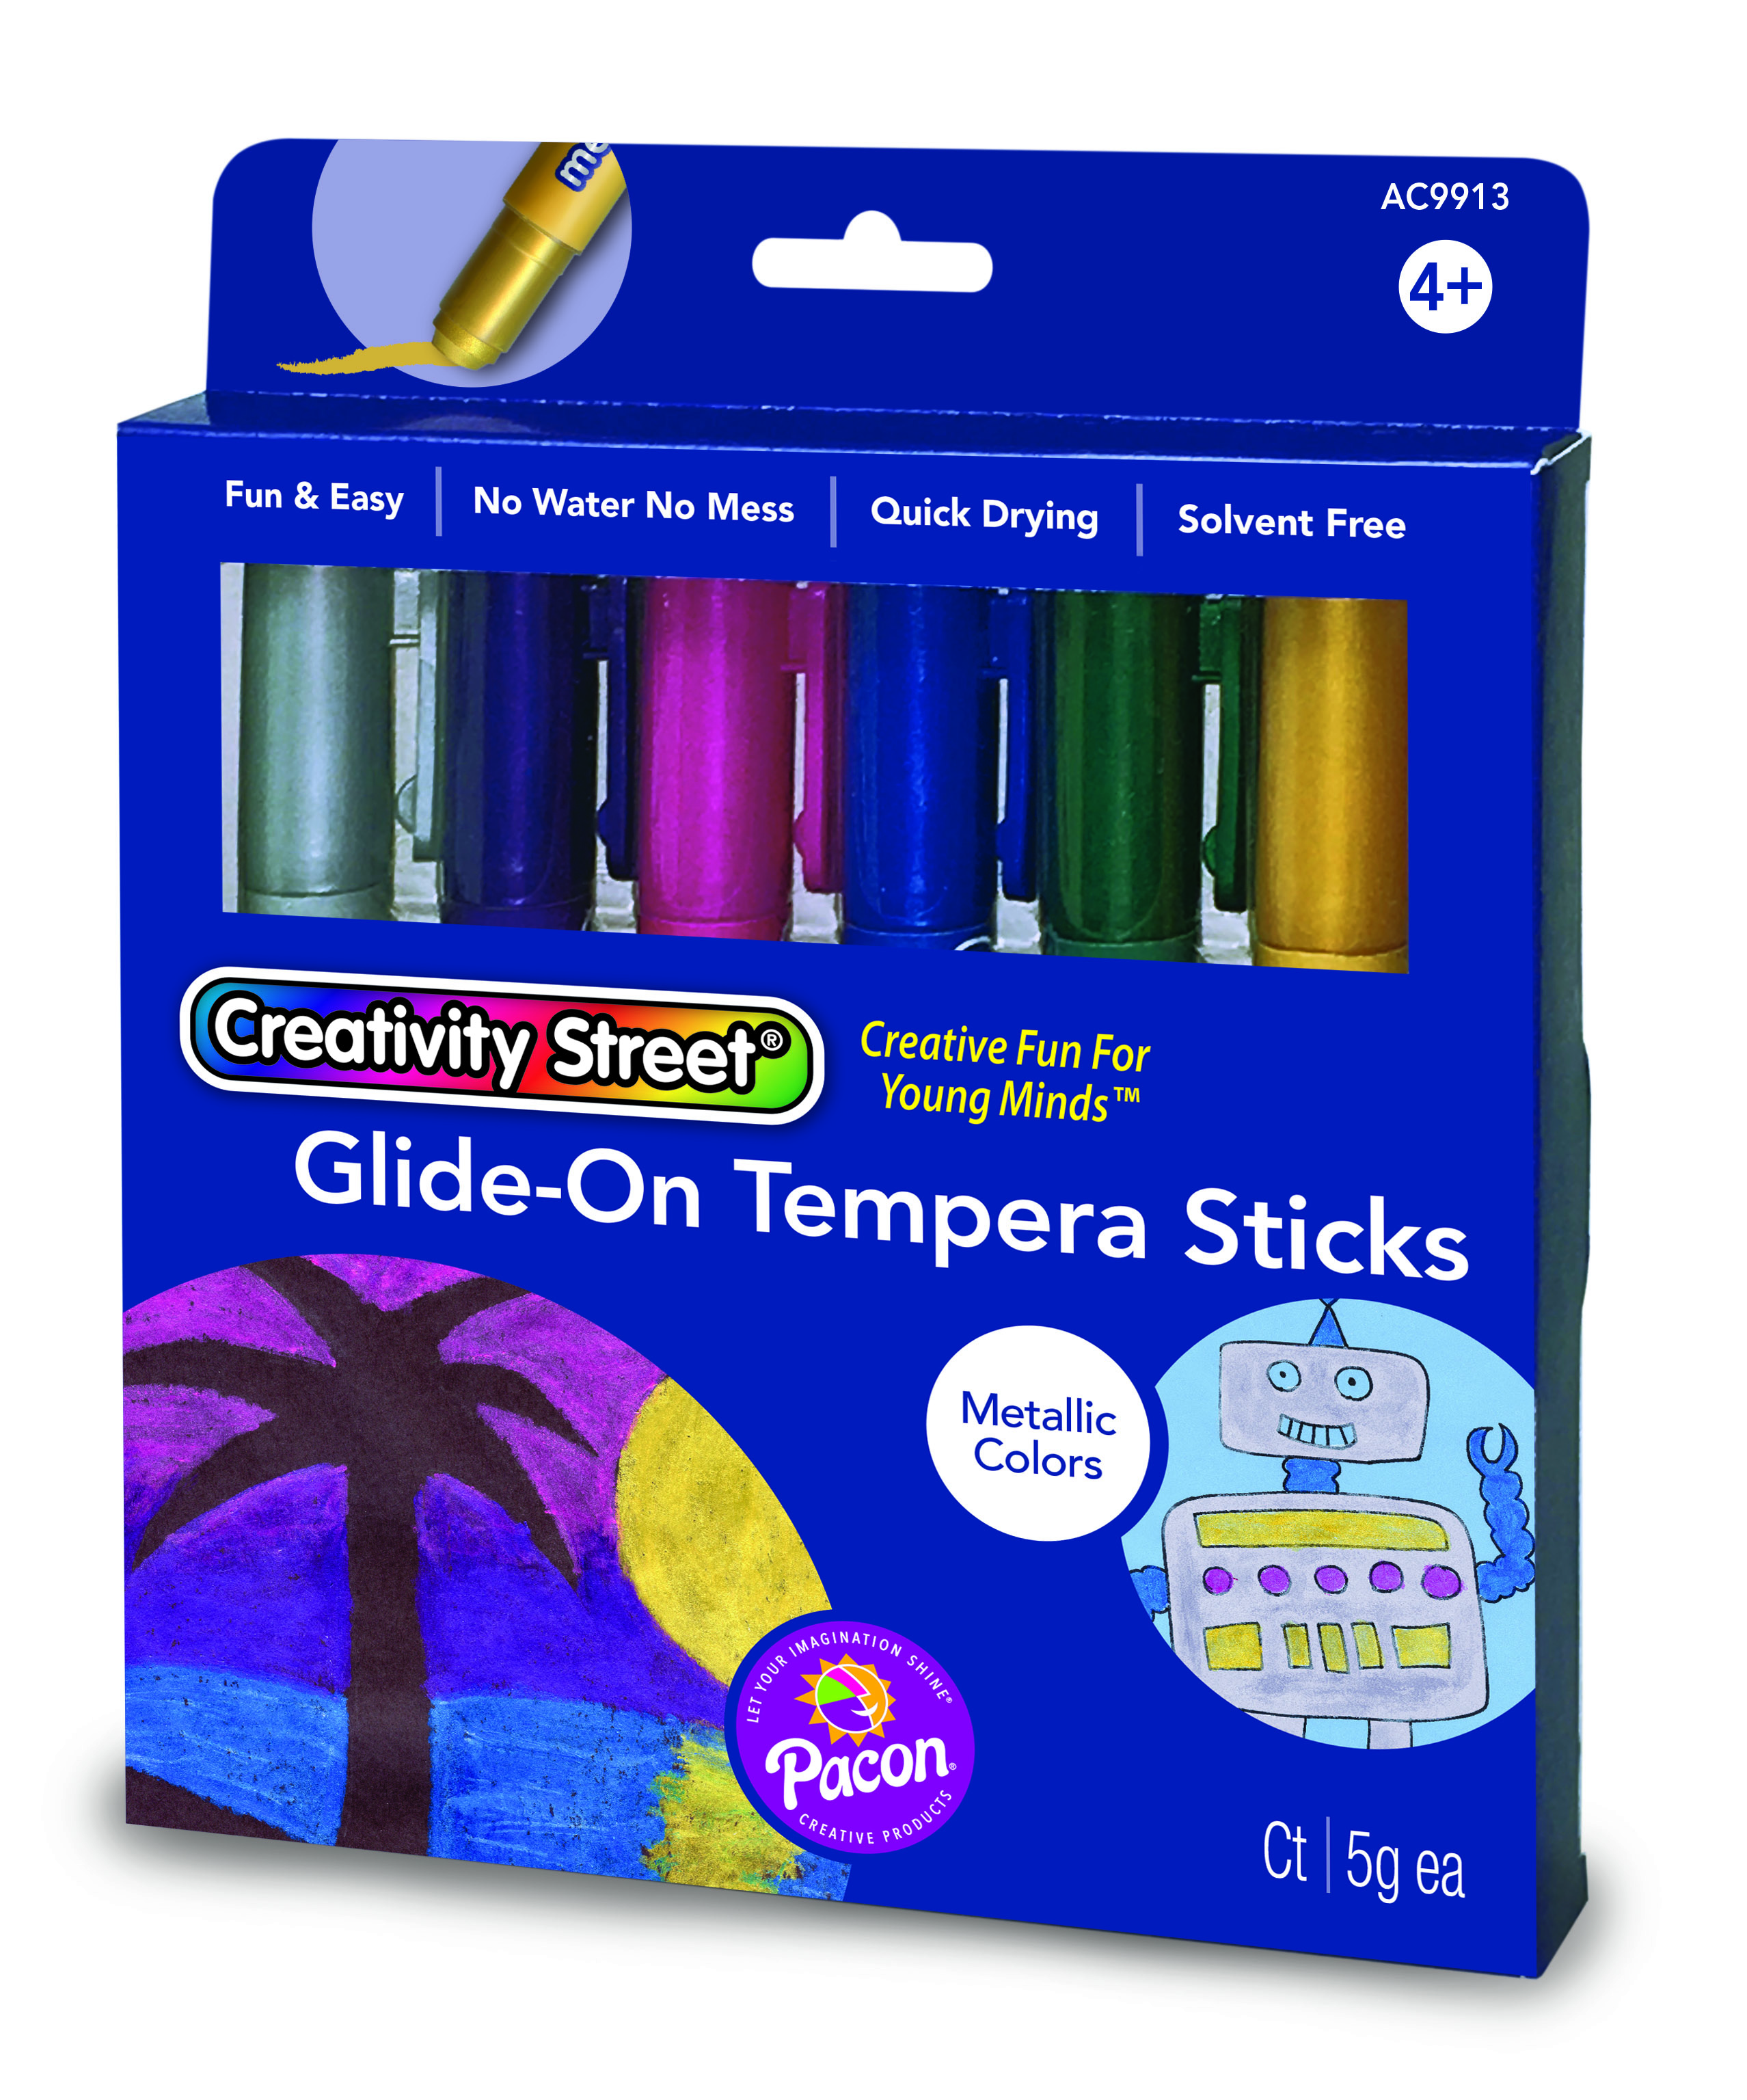 Creativity Street® Glide-On Tempera Sticks, Metallic Colors, 6 Count by Pacon Corporation